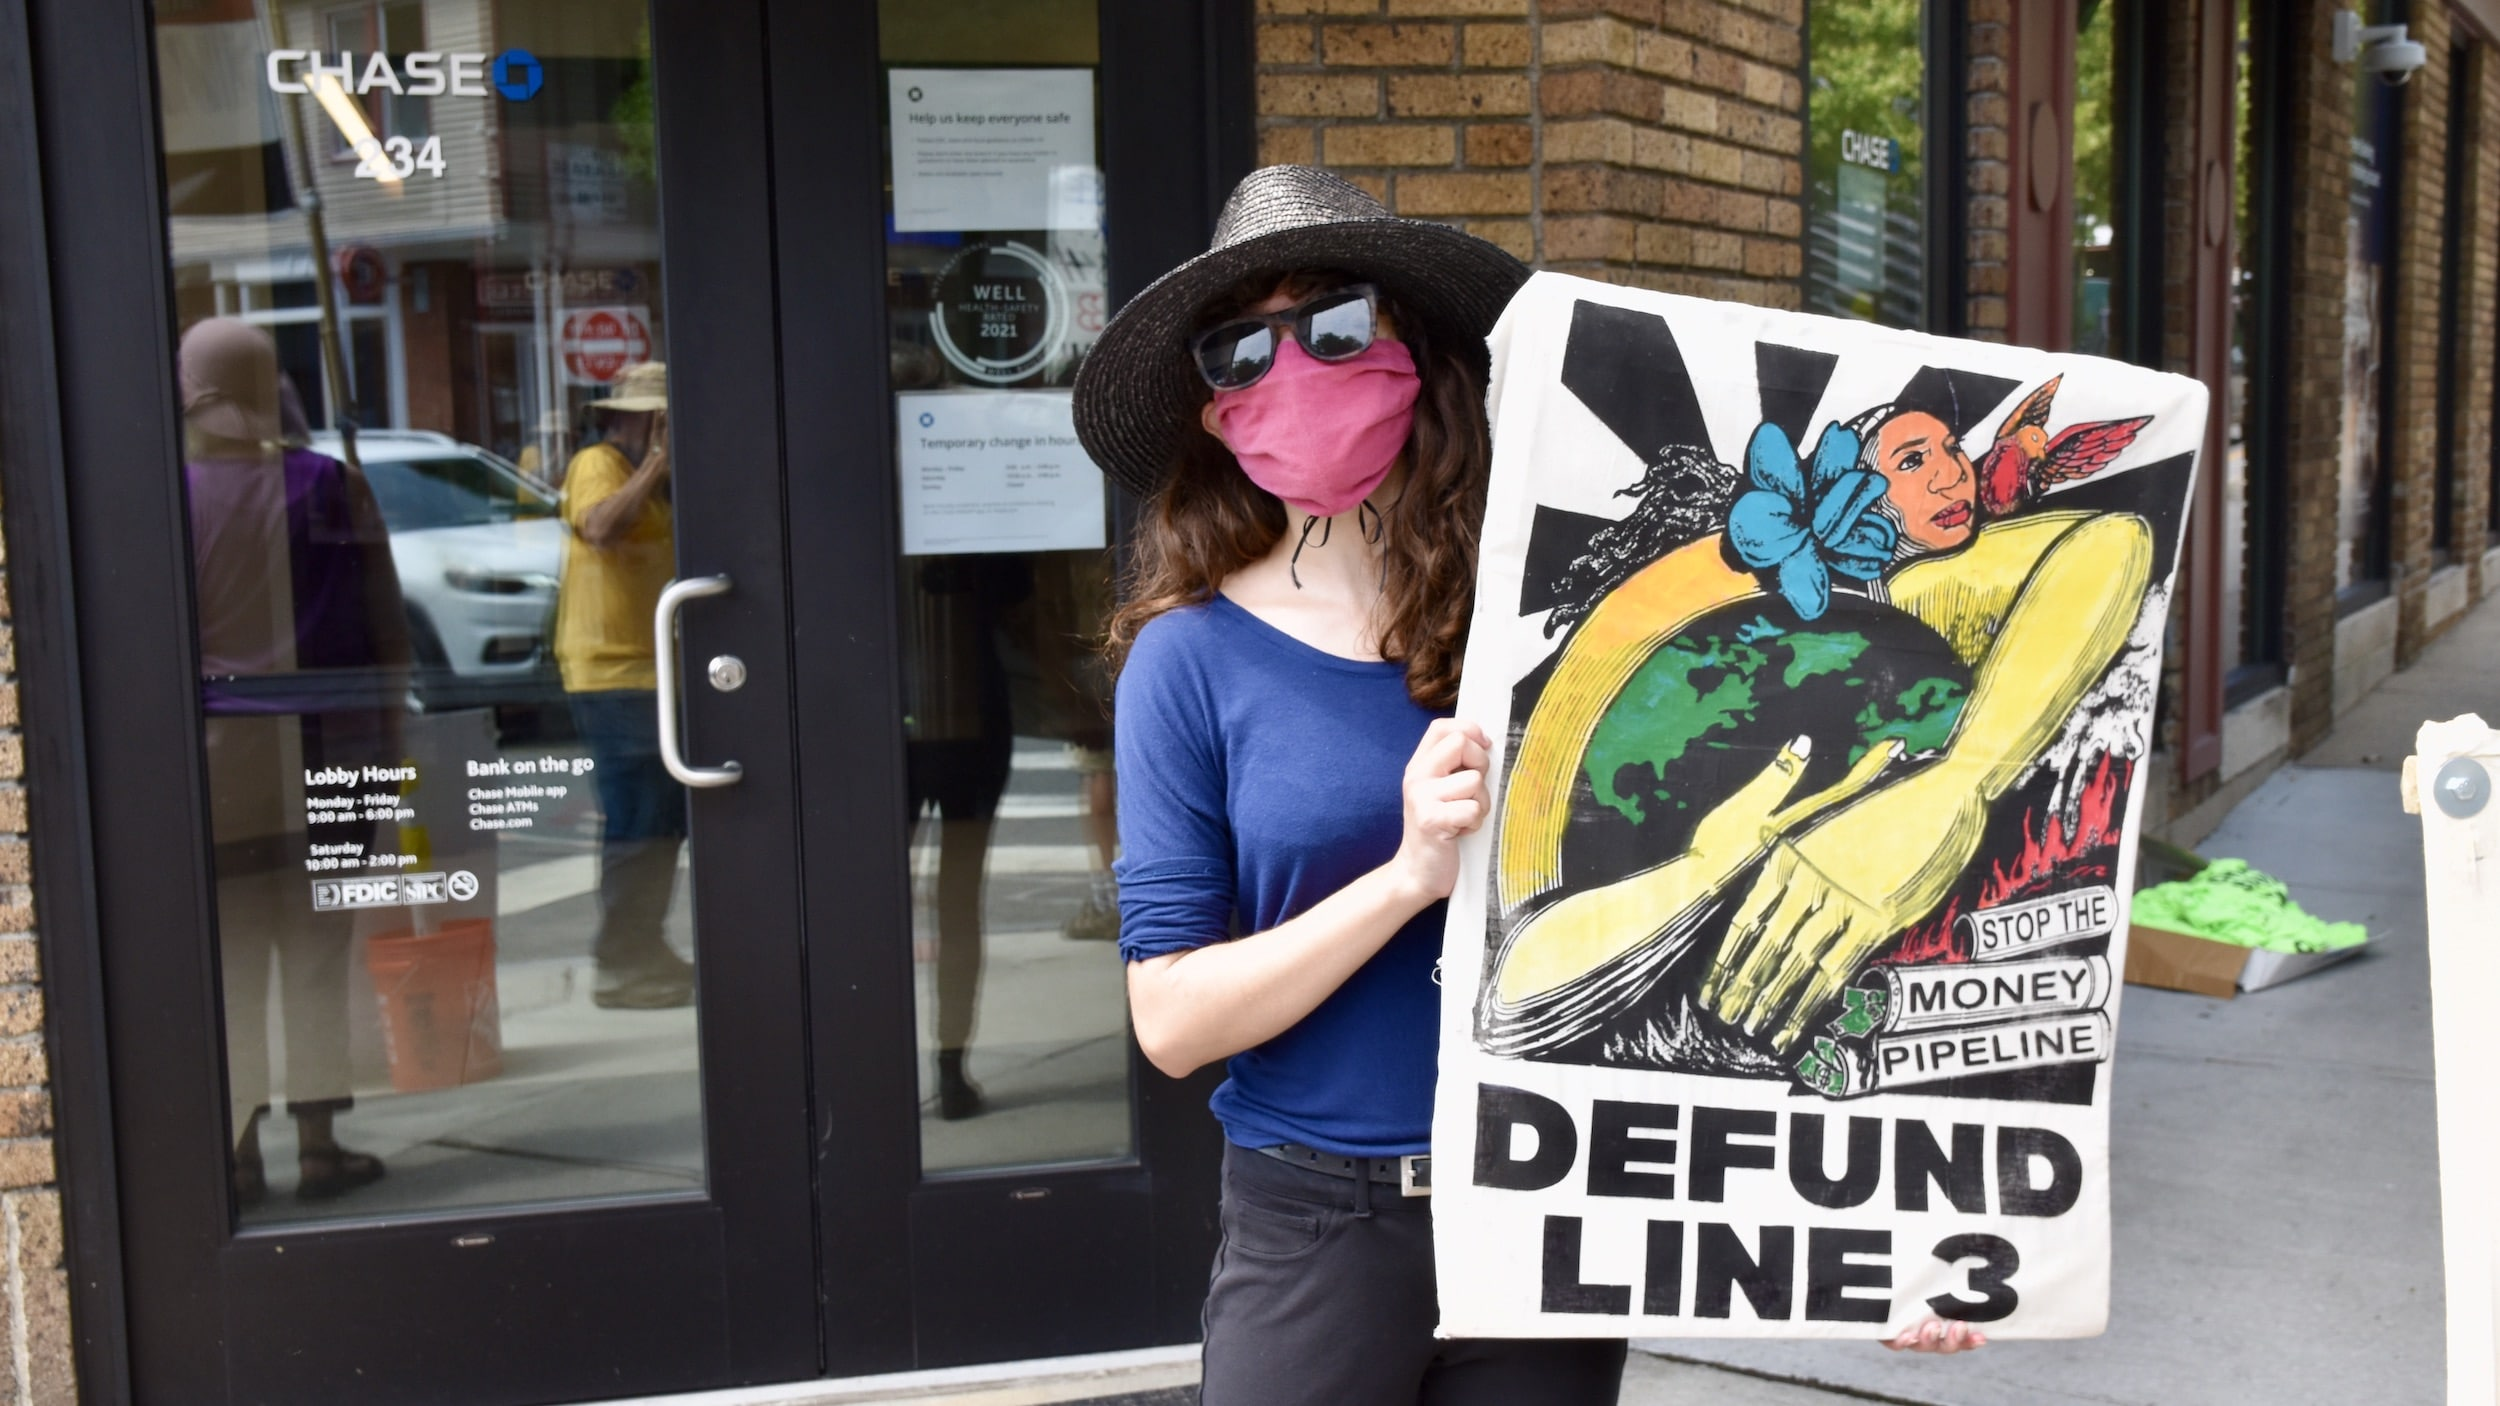 Photo for Climate Action RI holds Art / Music Protest outside fossil fuel funder Chase Bank in PVD